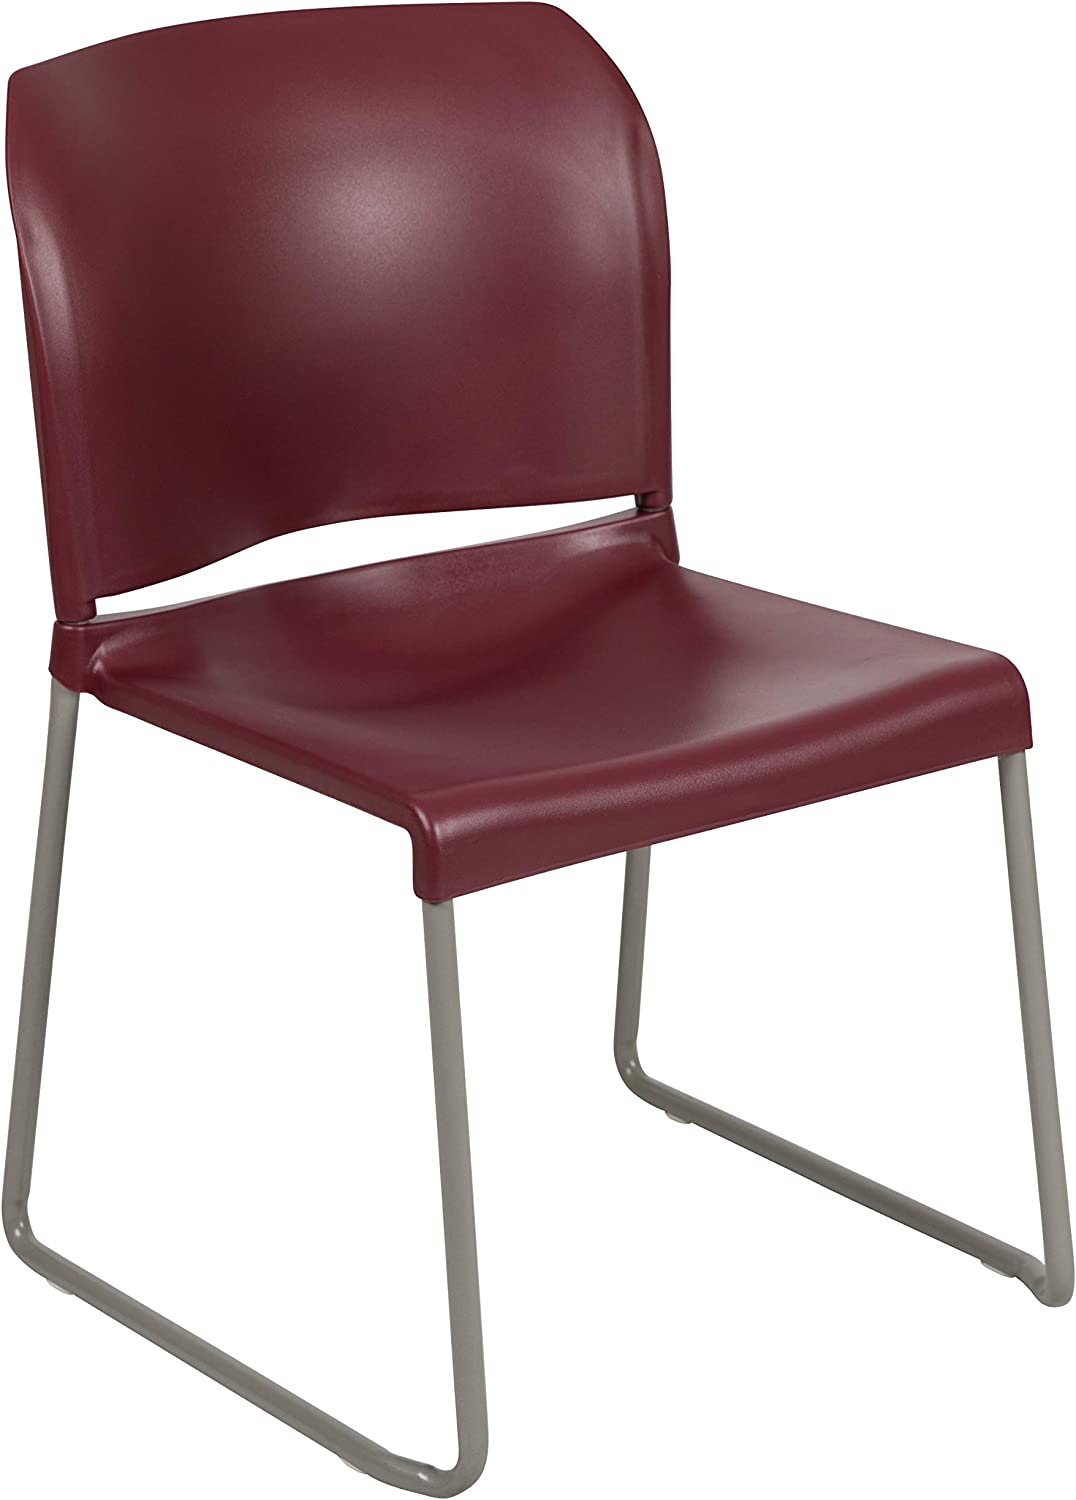 Flash Furniture HERCULES Series 880 lb. Capacity Burgundy Full Back Contoured Stack Chair with Gray Powder Coated Sled Base